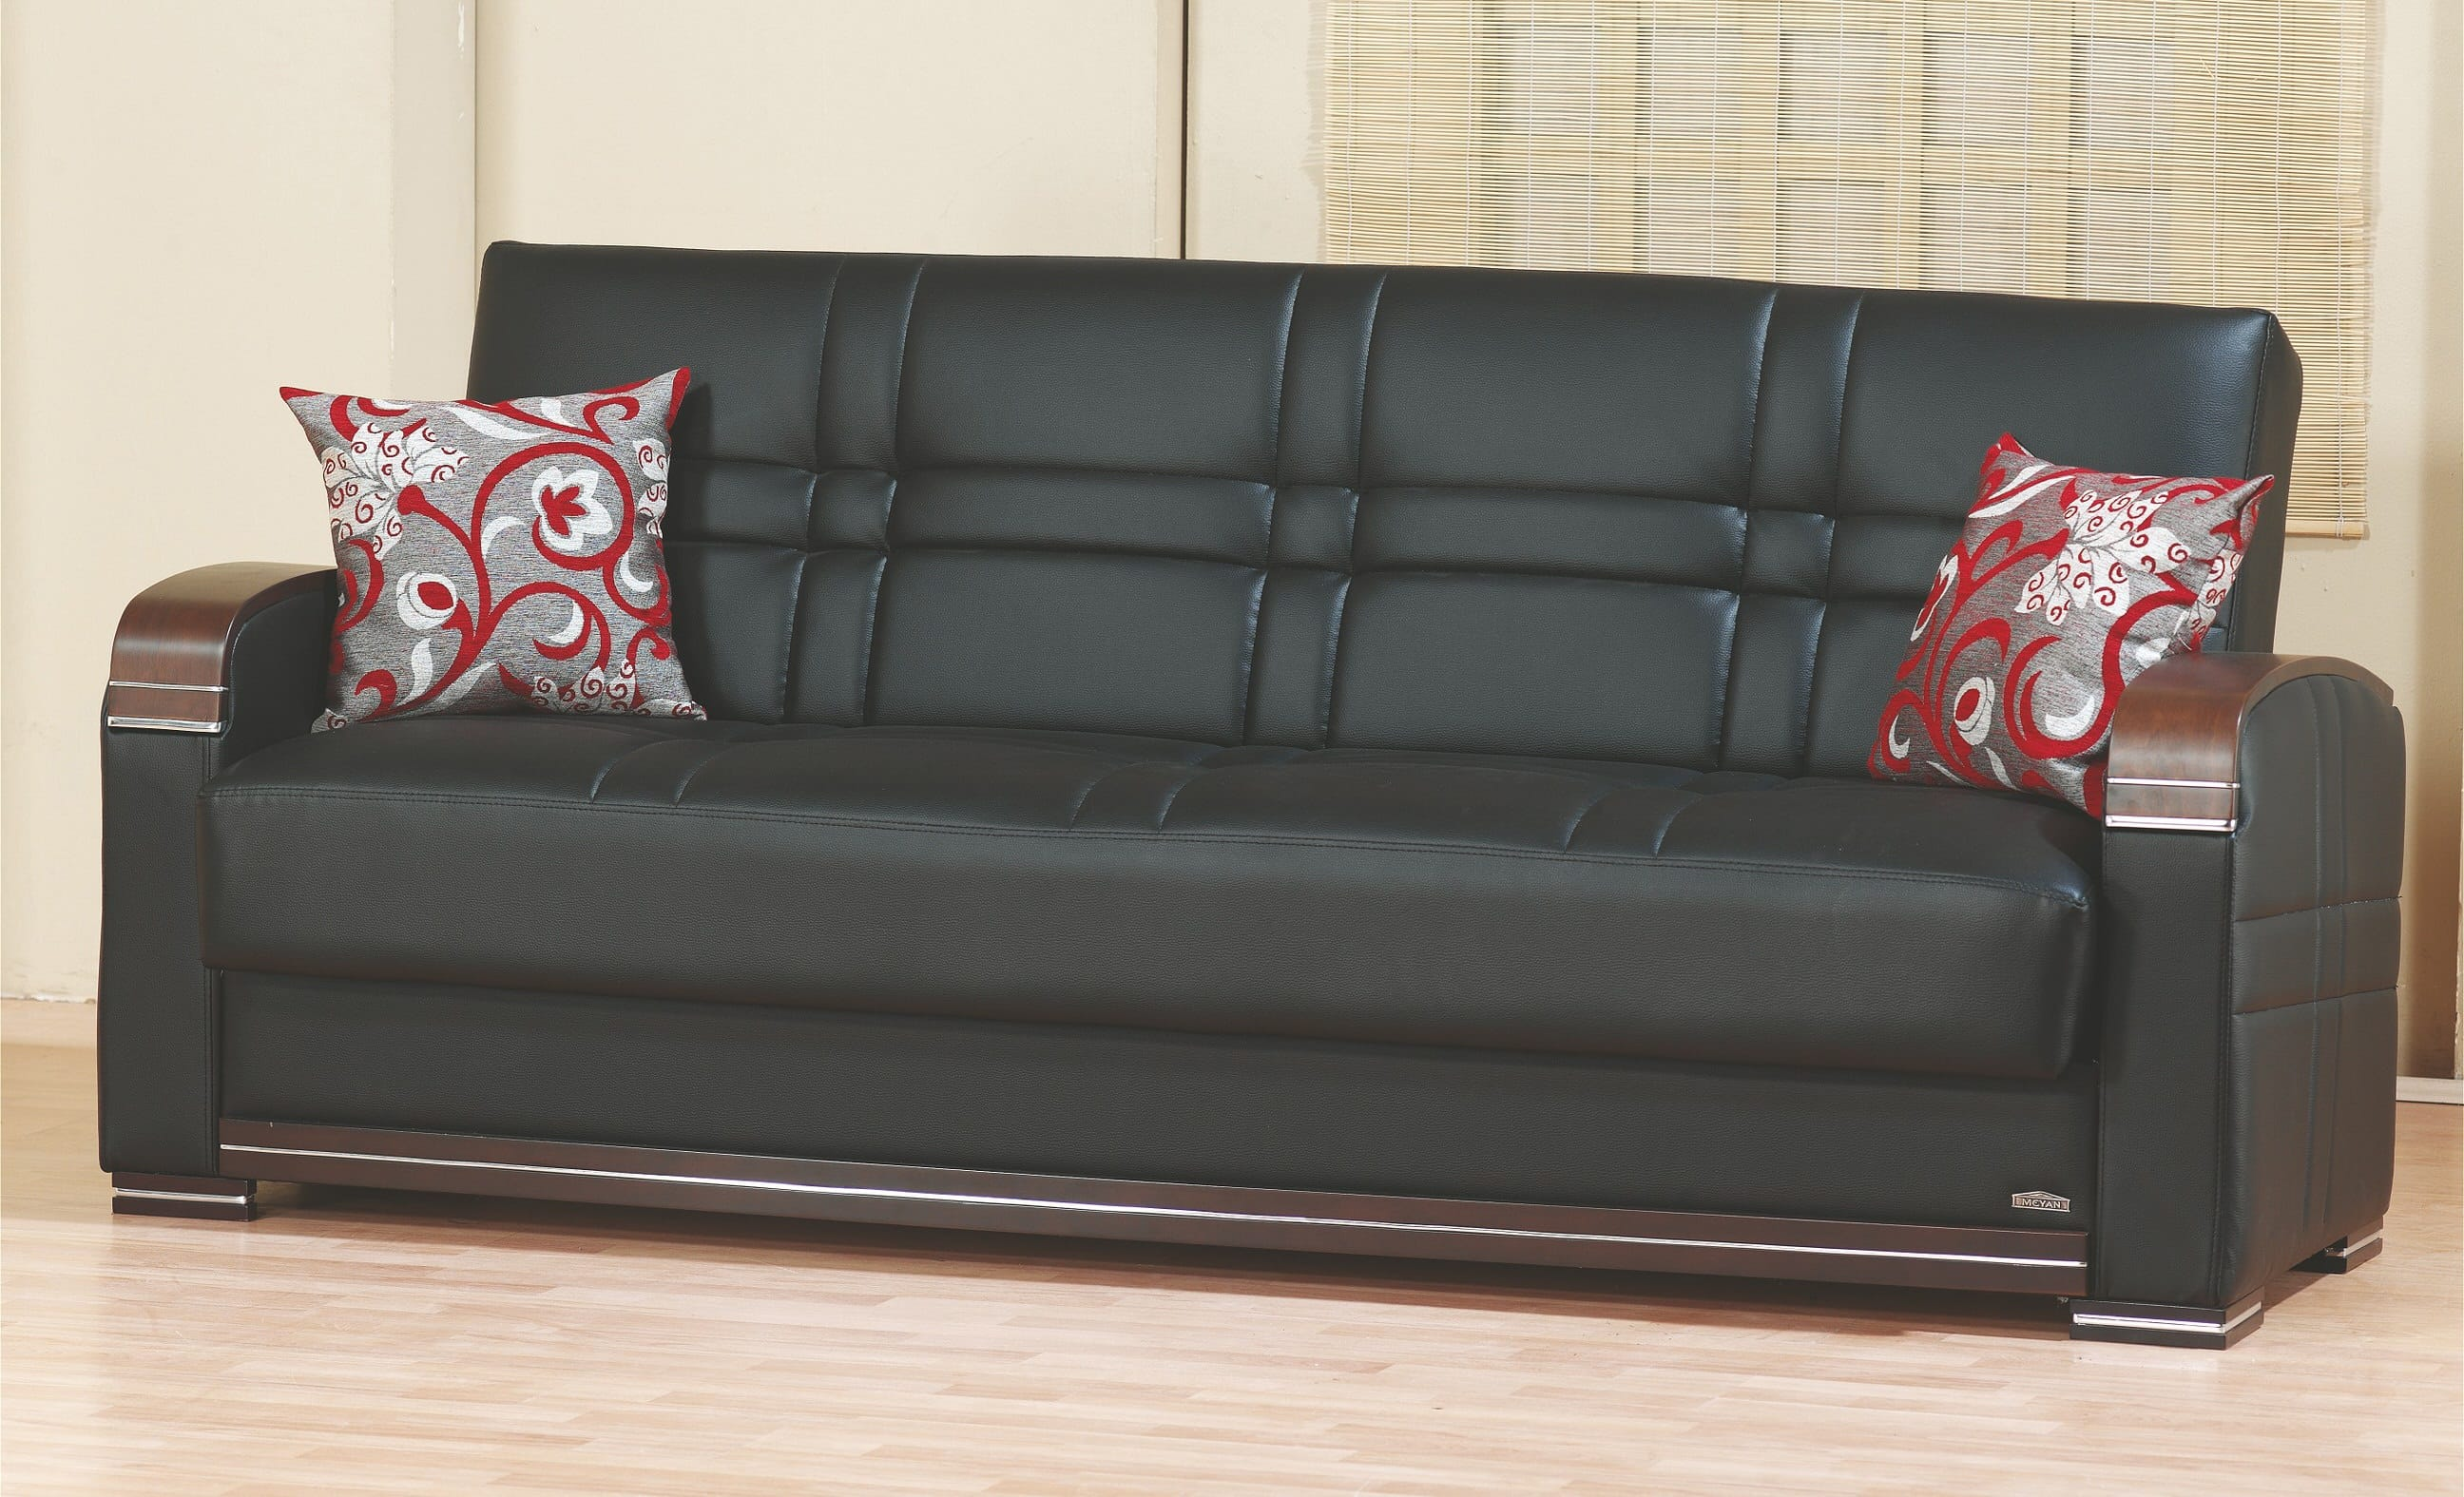 couch room leather furniture white sets and small sofa sectional size loveseats black red loveseat living of sofas full